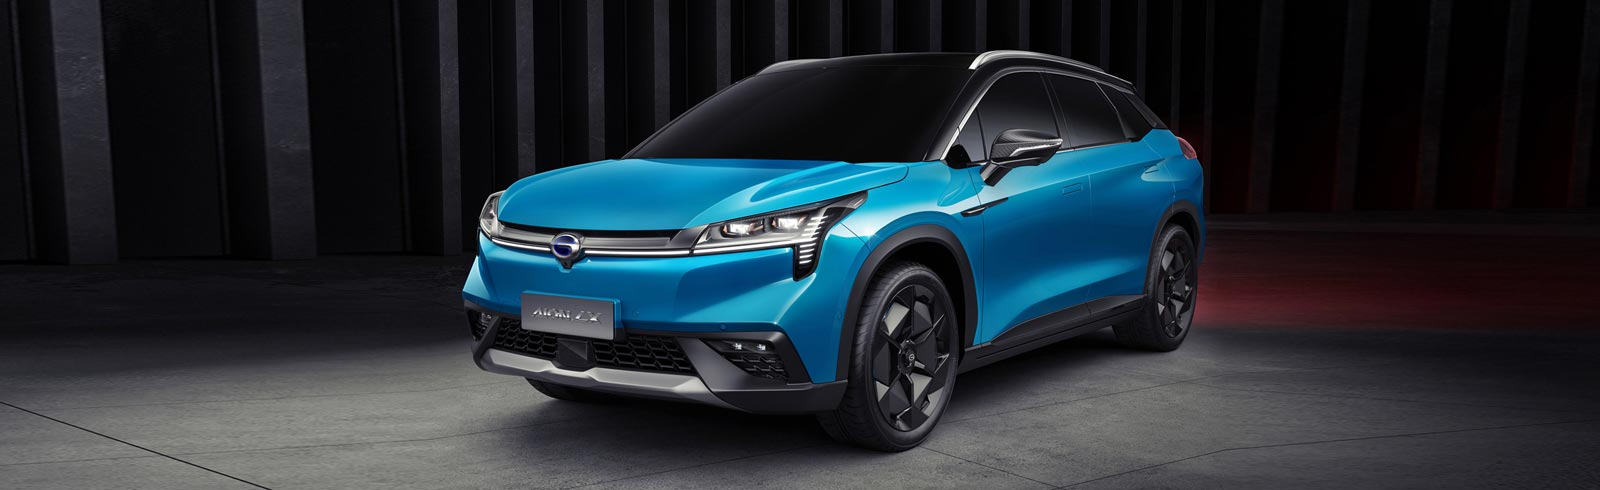 GAC Aion LX  with 650 km of NEDC range goes on sale in China in October